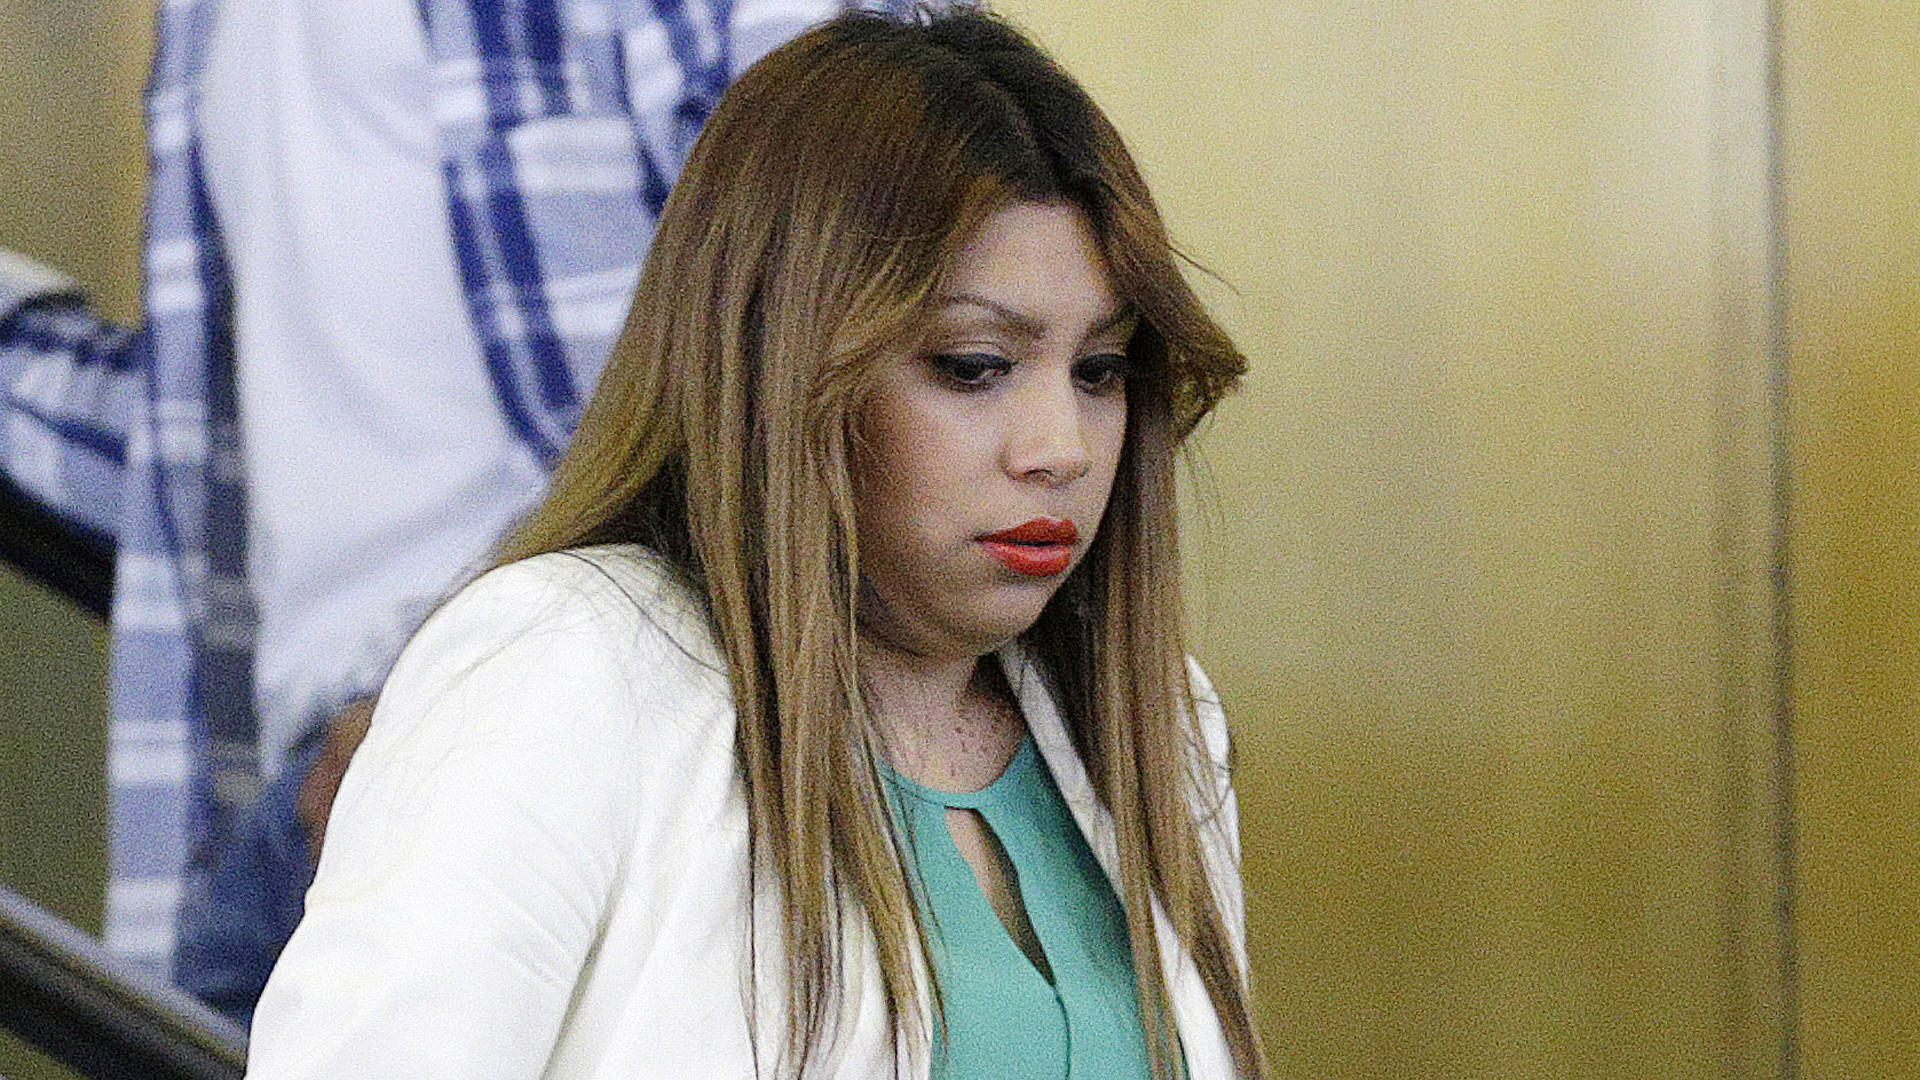 Denisse Ignacio, mother of Eric Galarza Jr., enters court for the murder trial of her son's alleged killer Miguel Hernandez.